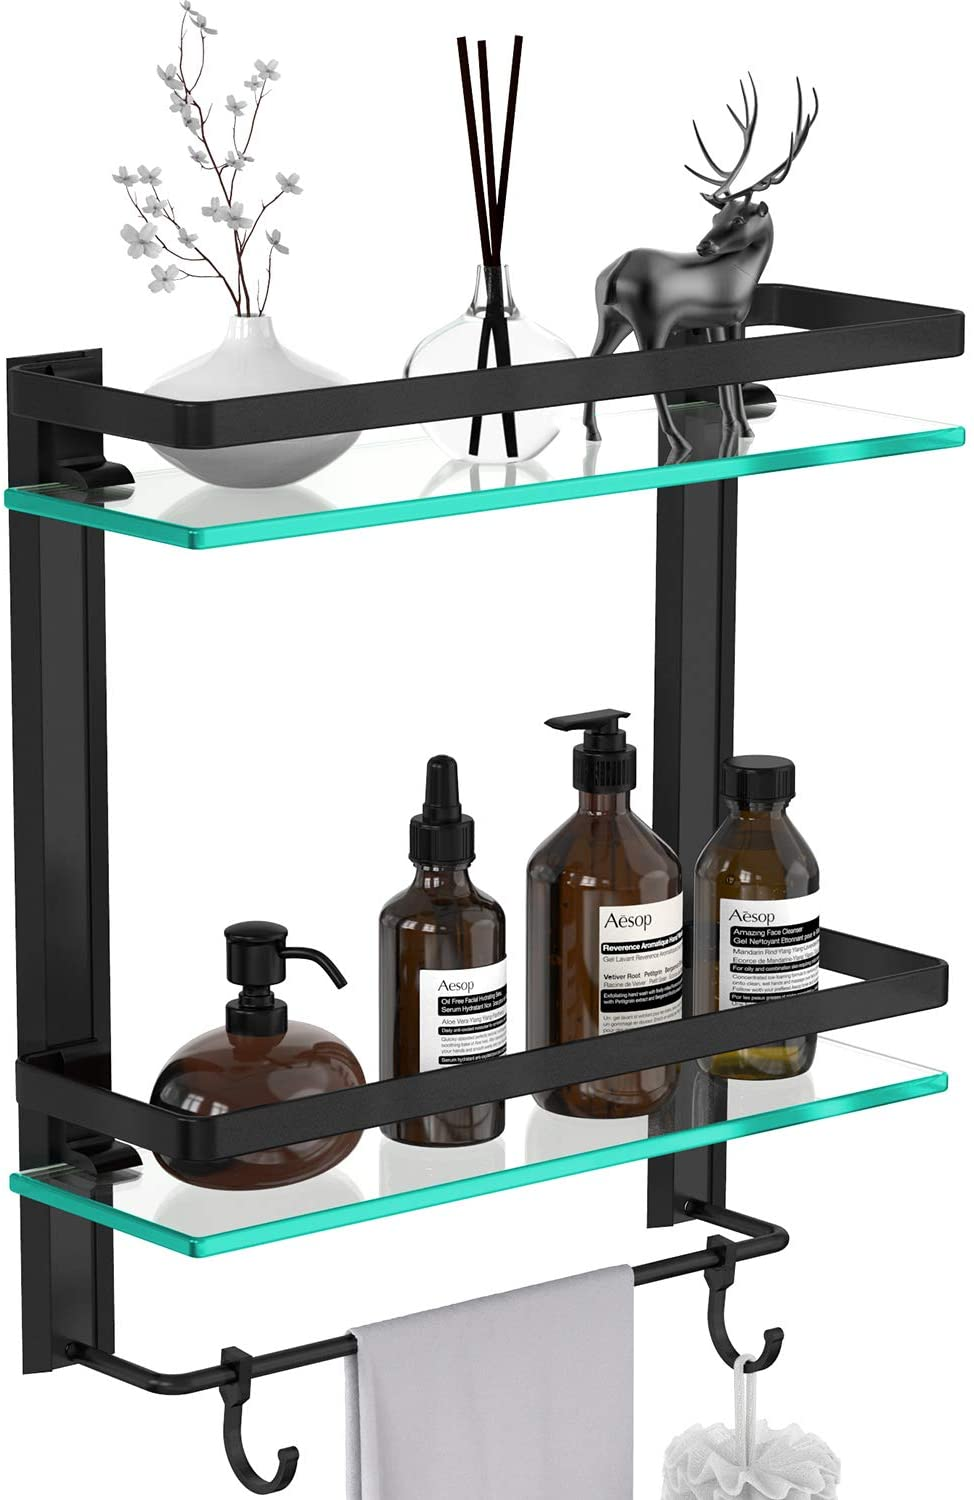 Vdomus Tempered Glass Bathroom Shelf, 2 Tier Shelf with Towel Bar Wall Mounted Shower Storage 15.2 by 5 inches, with Anodic Oxidation Finish (Black)